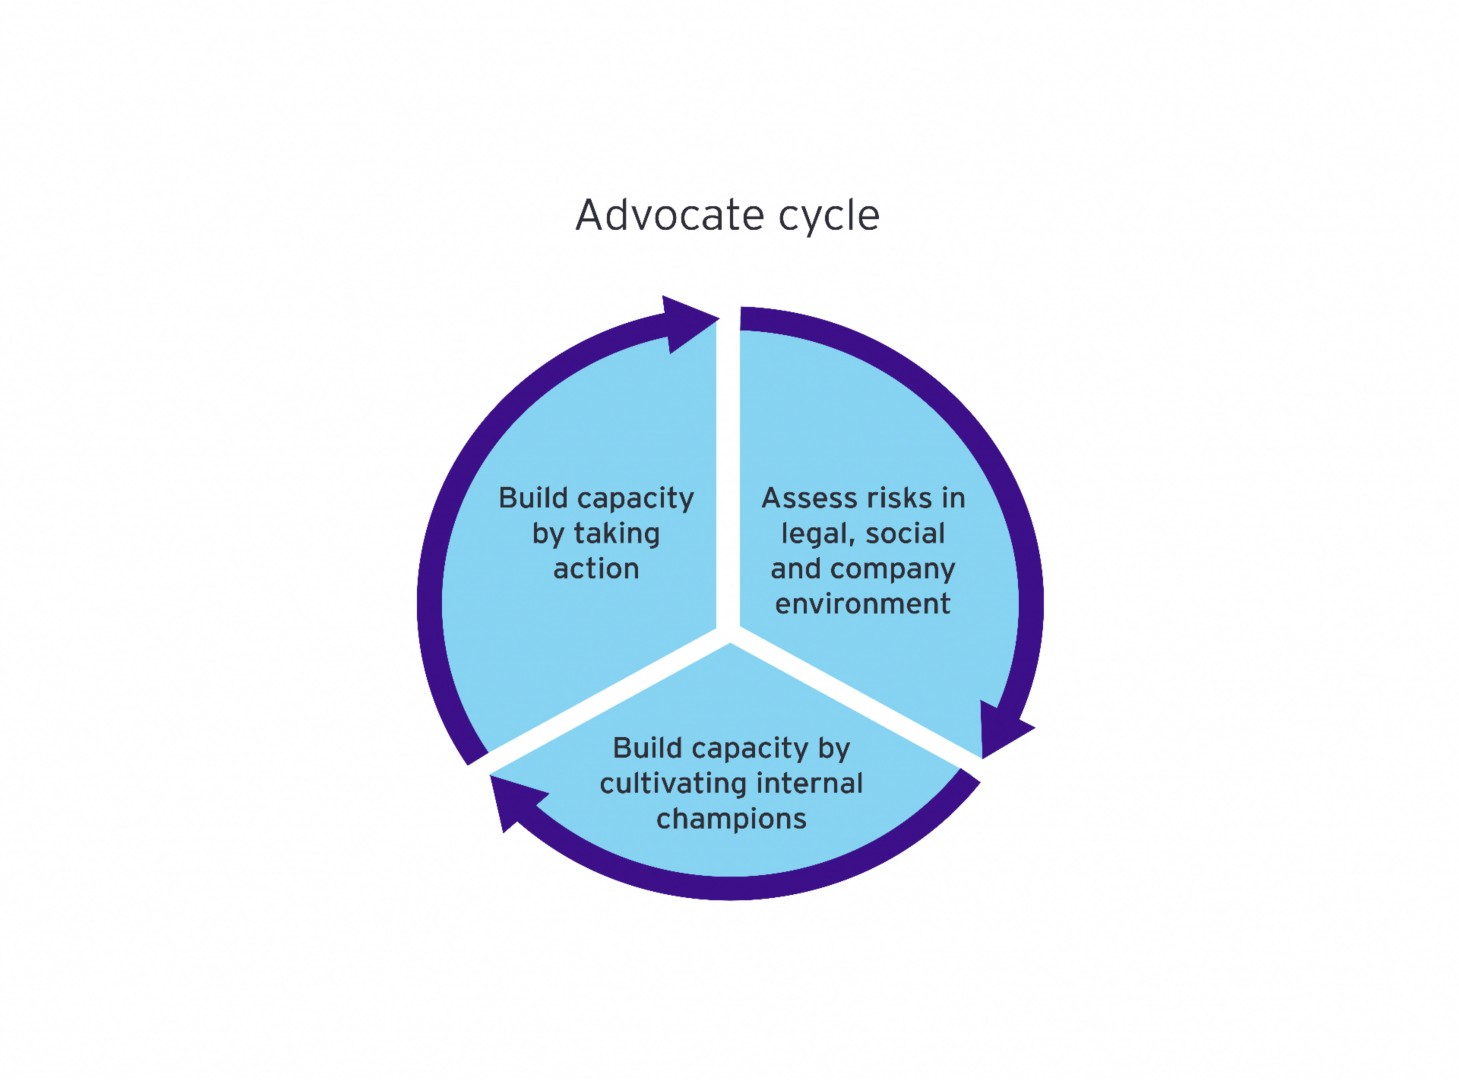 Advoctate cycle graphic